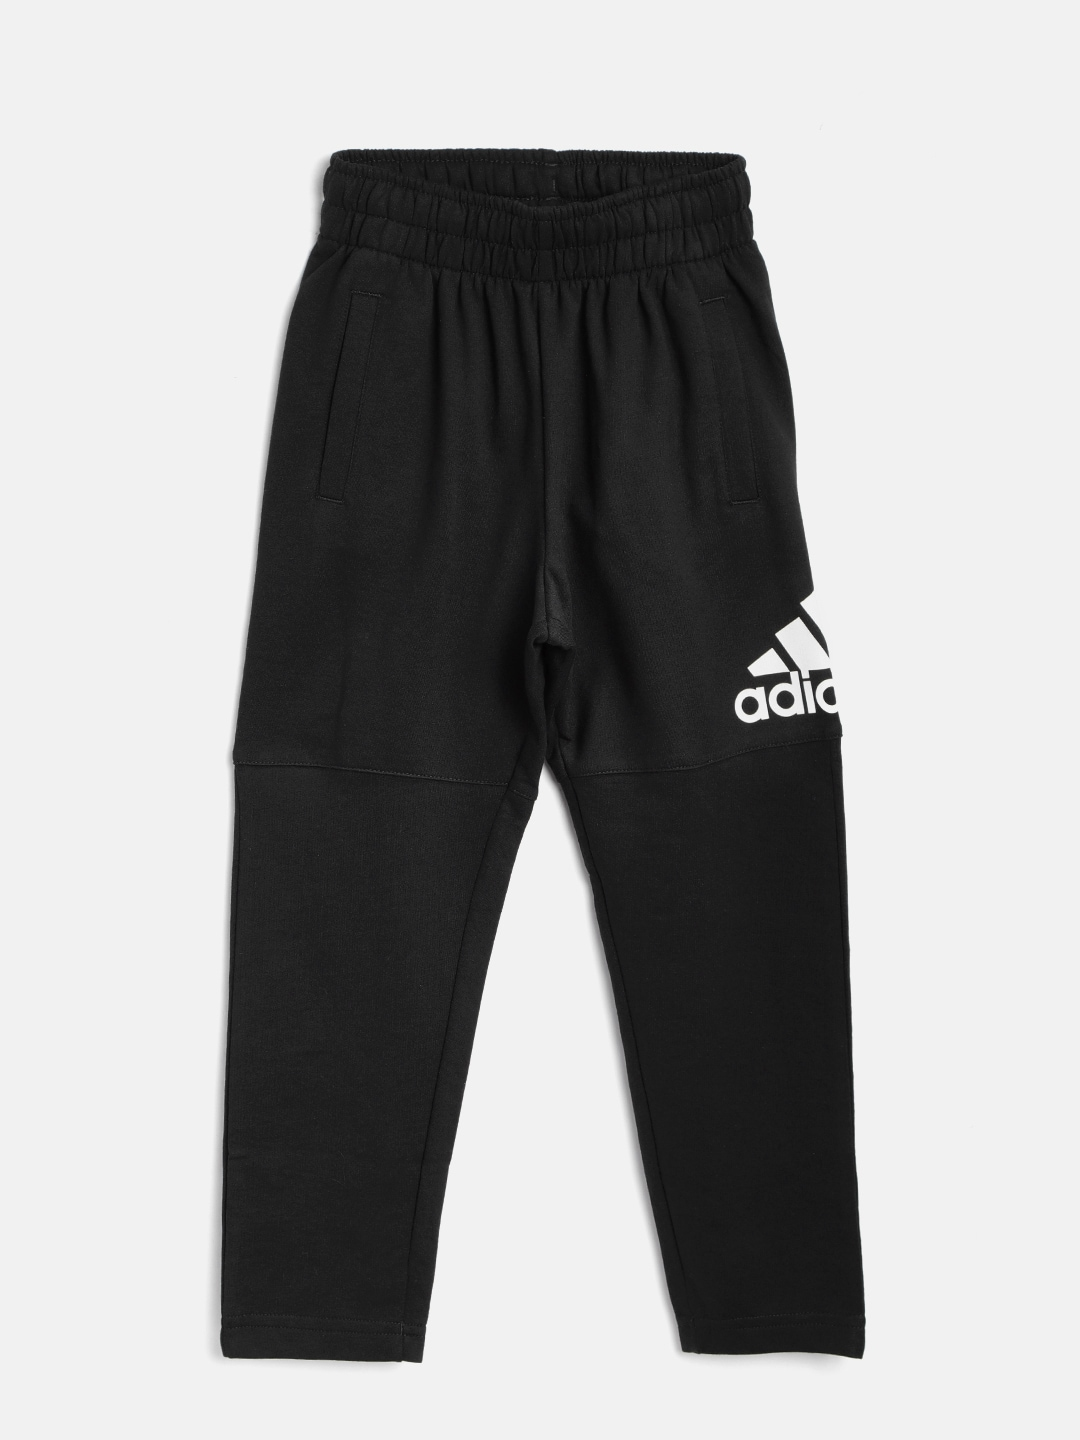 9cc582418 Adidas Training Track Pants Trousers Trousers - Buy Adidas Training Track  Pants Trousers Trousers online in India